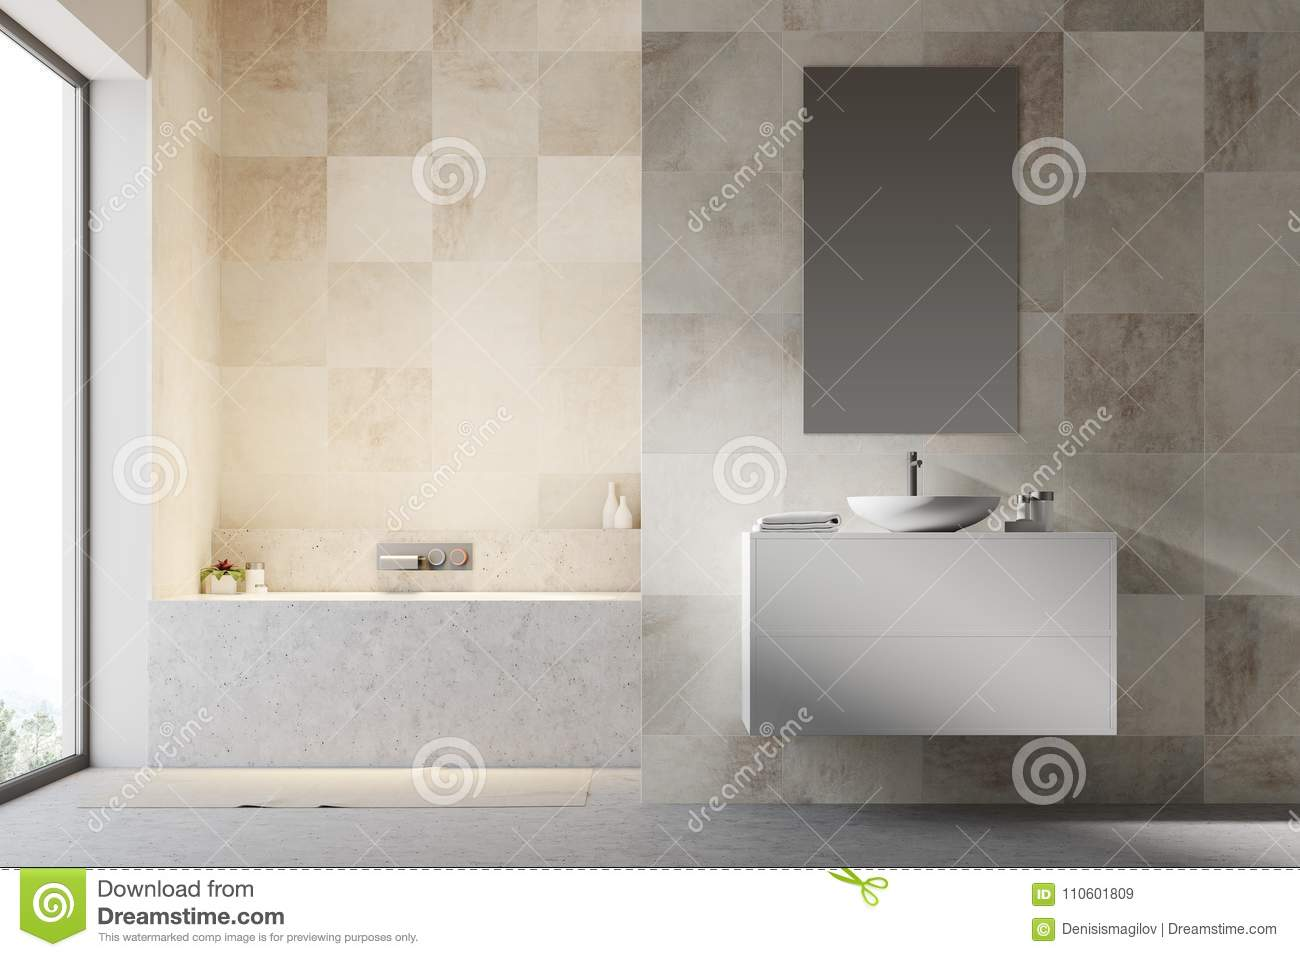 White Tiled Bathroom Interior Stock Illustration - Illustration of ...